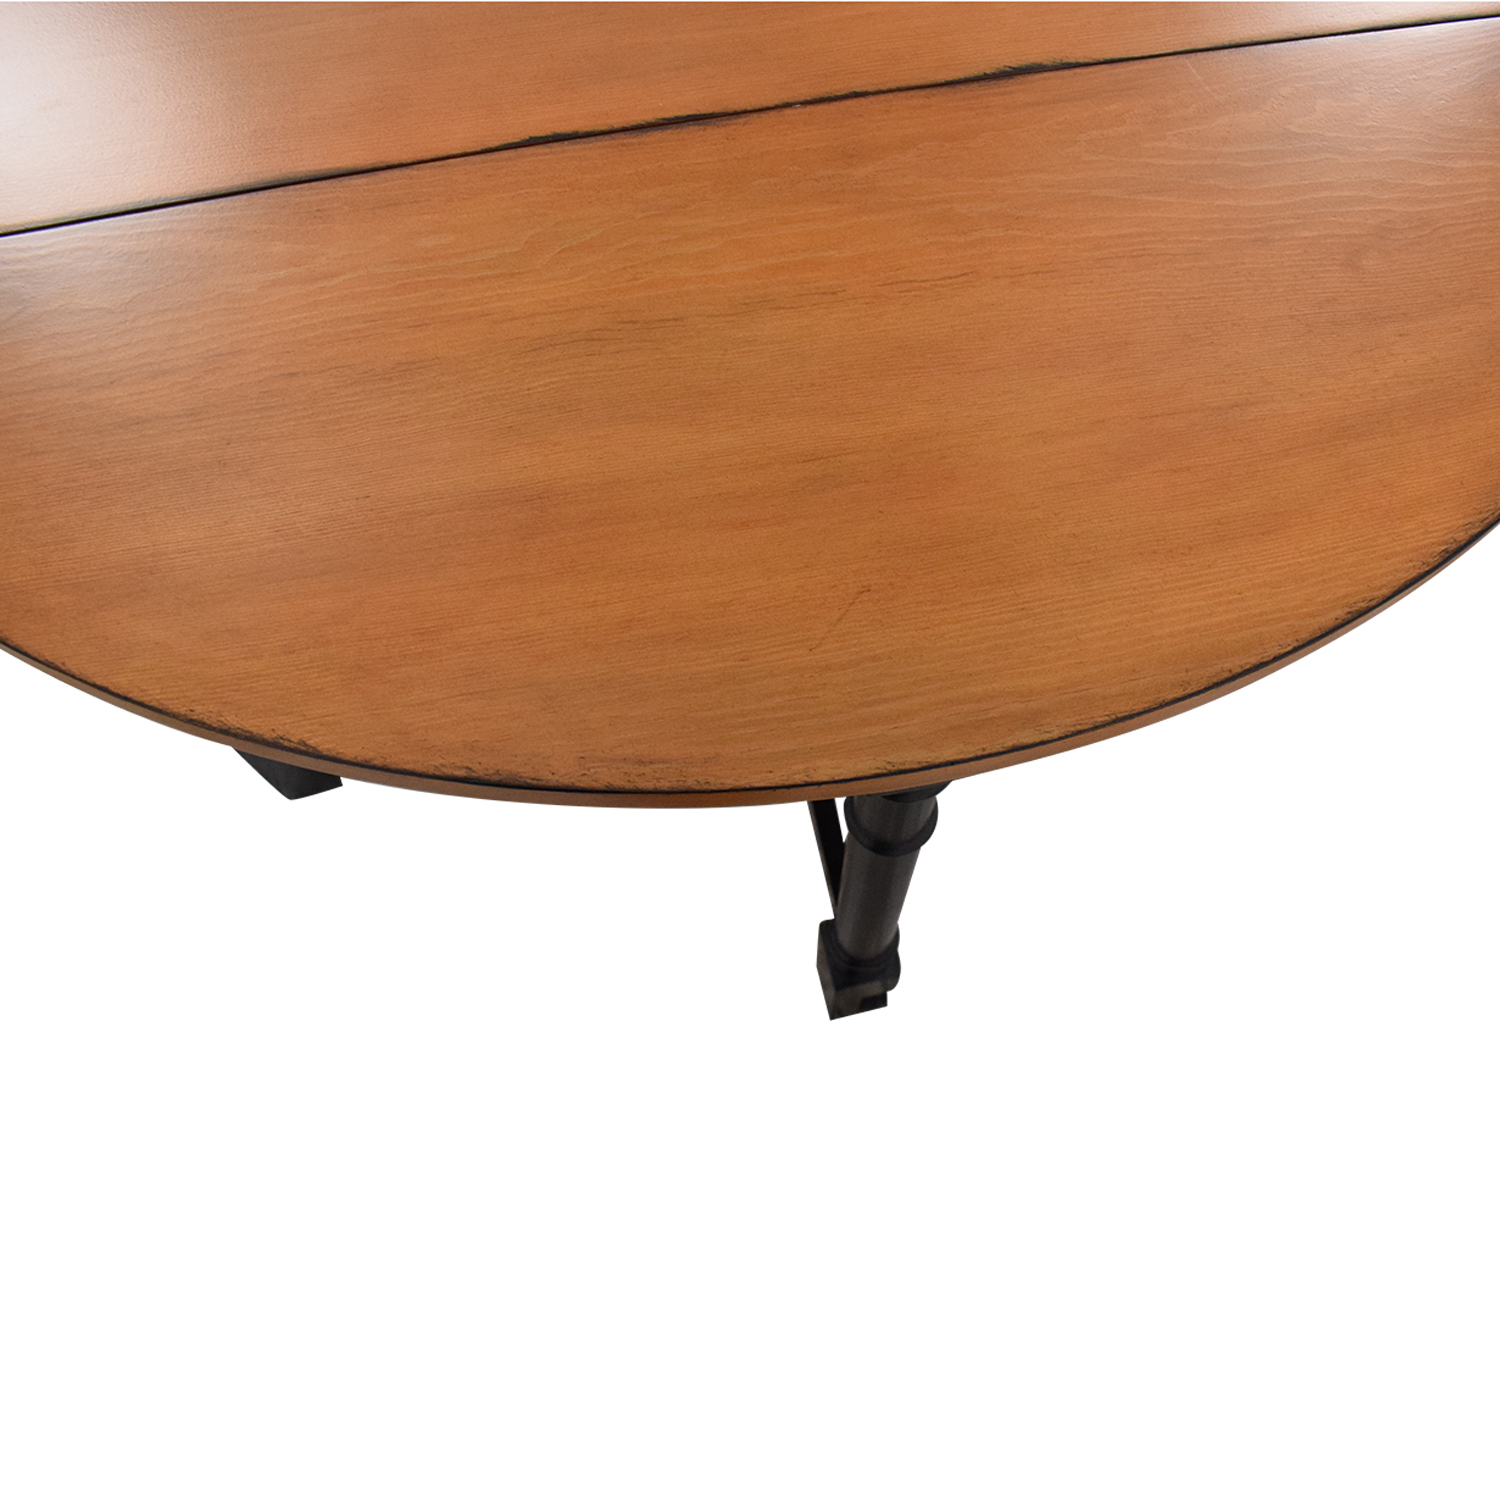 Accent Trend Accent Trend Solid Wood Gateleg Table price